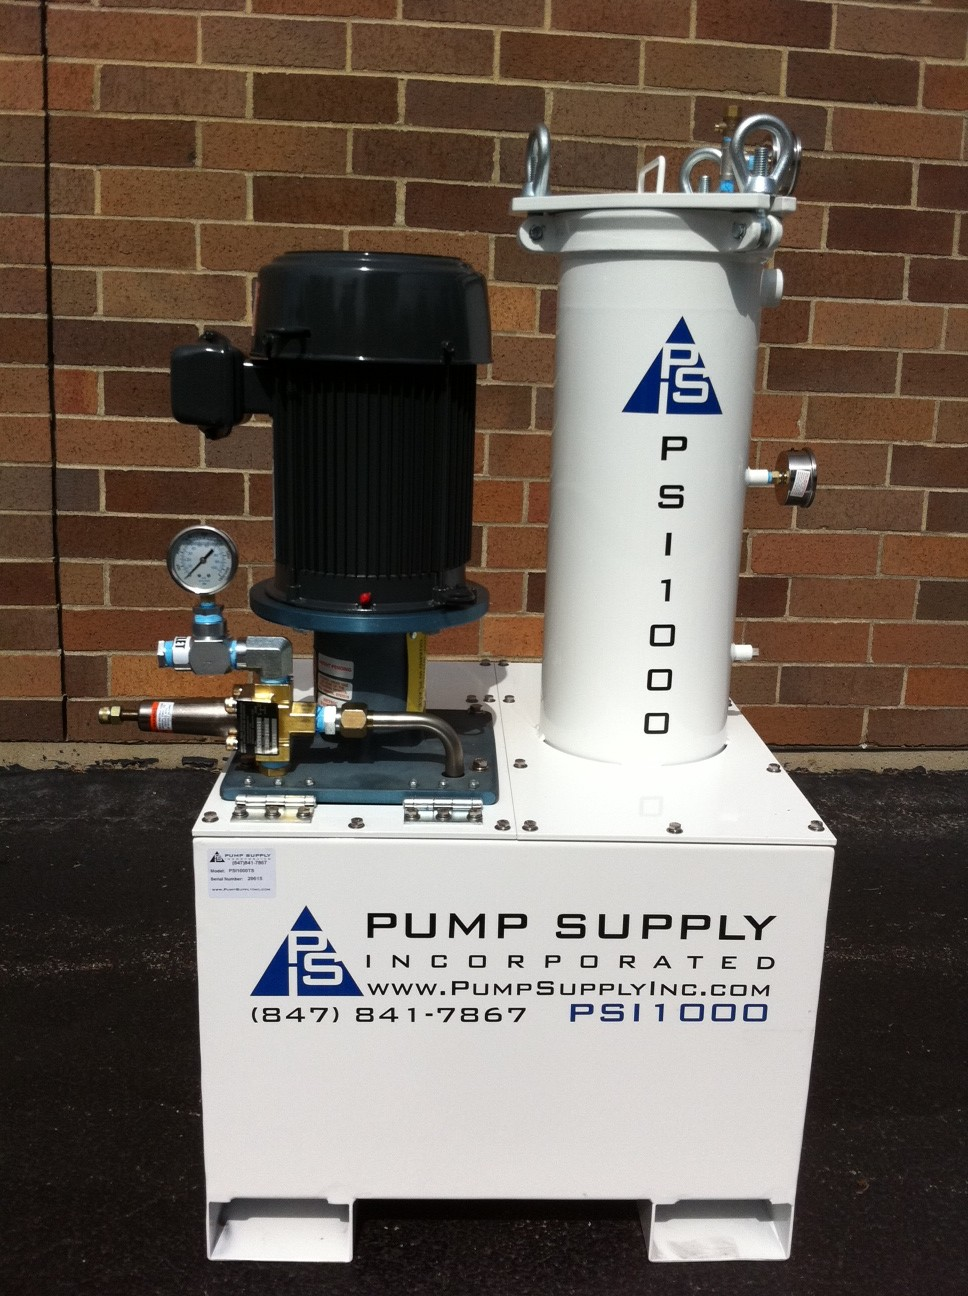 Dayton High Pressure Coolant Pumps : Pump supply incorporated high pressure coolant system